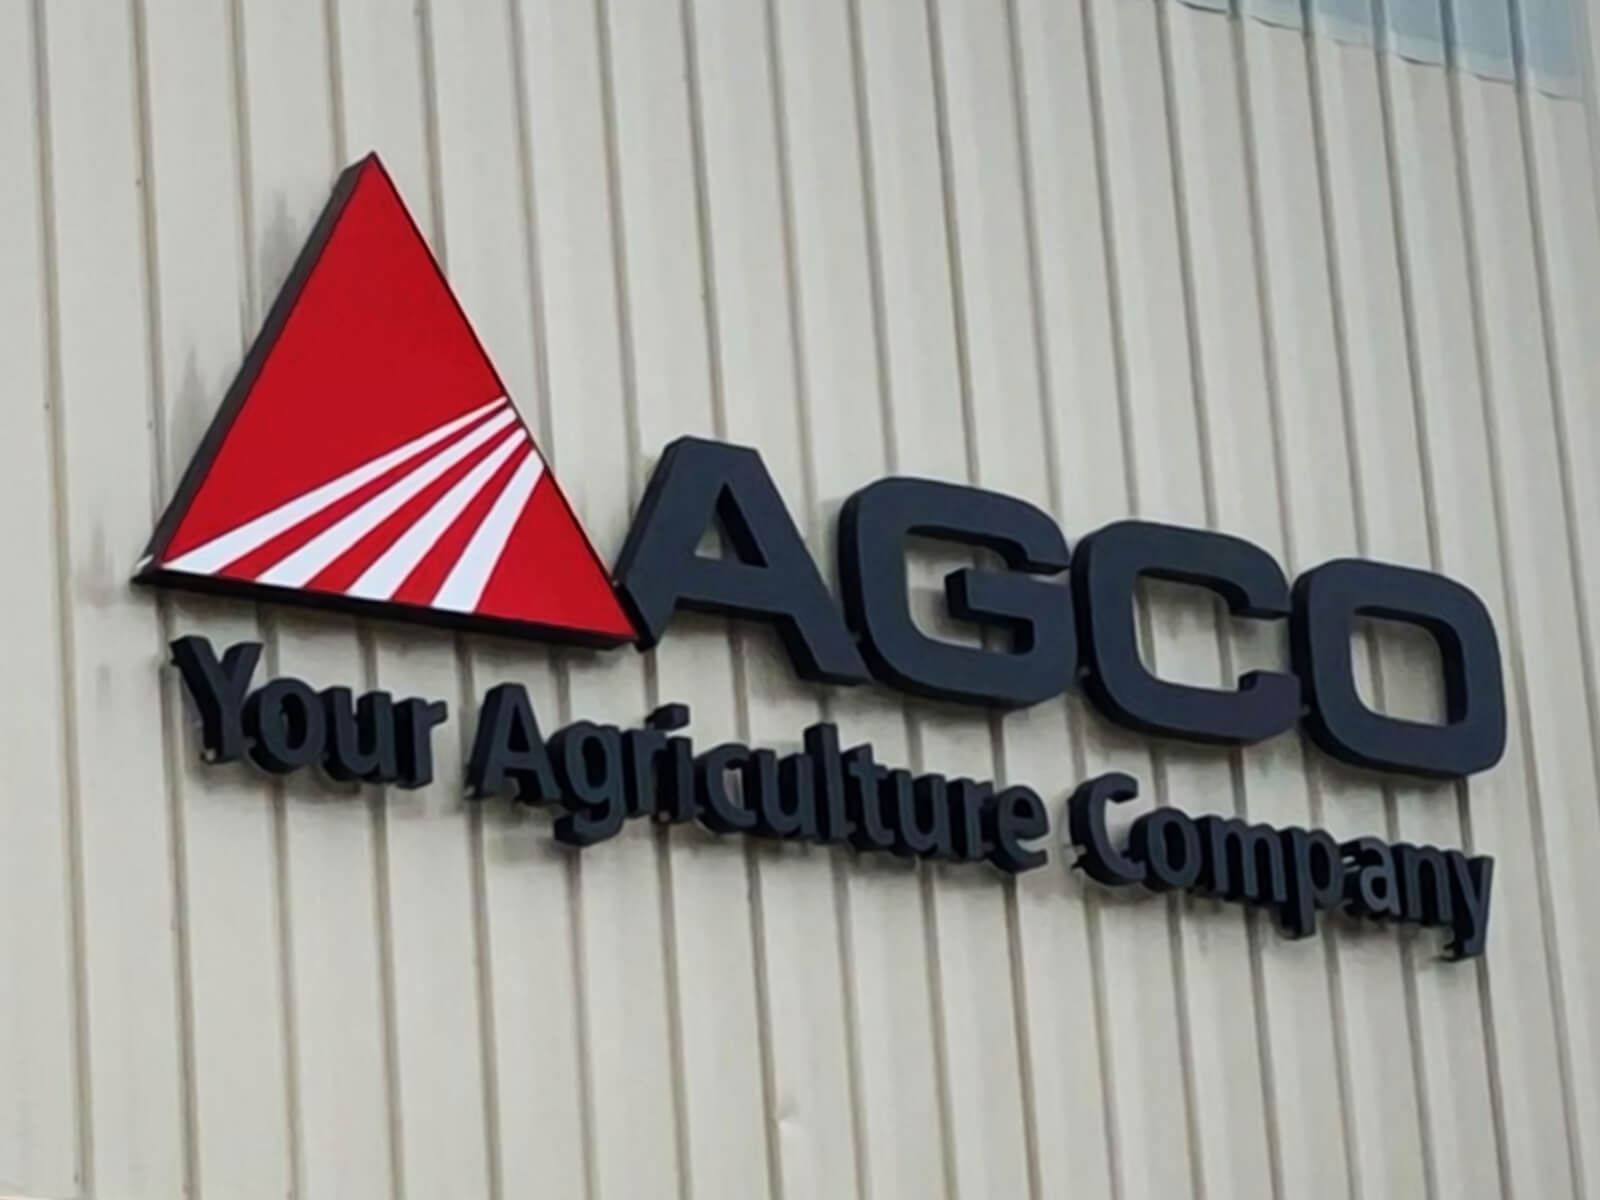 Low profile signage for an AGCO business.